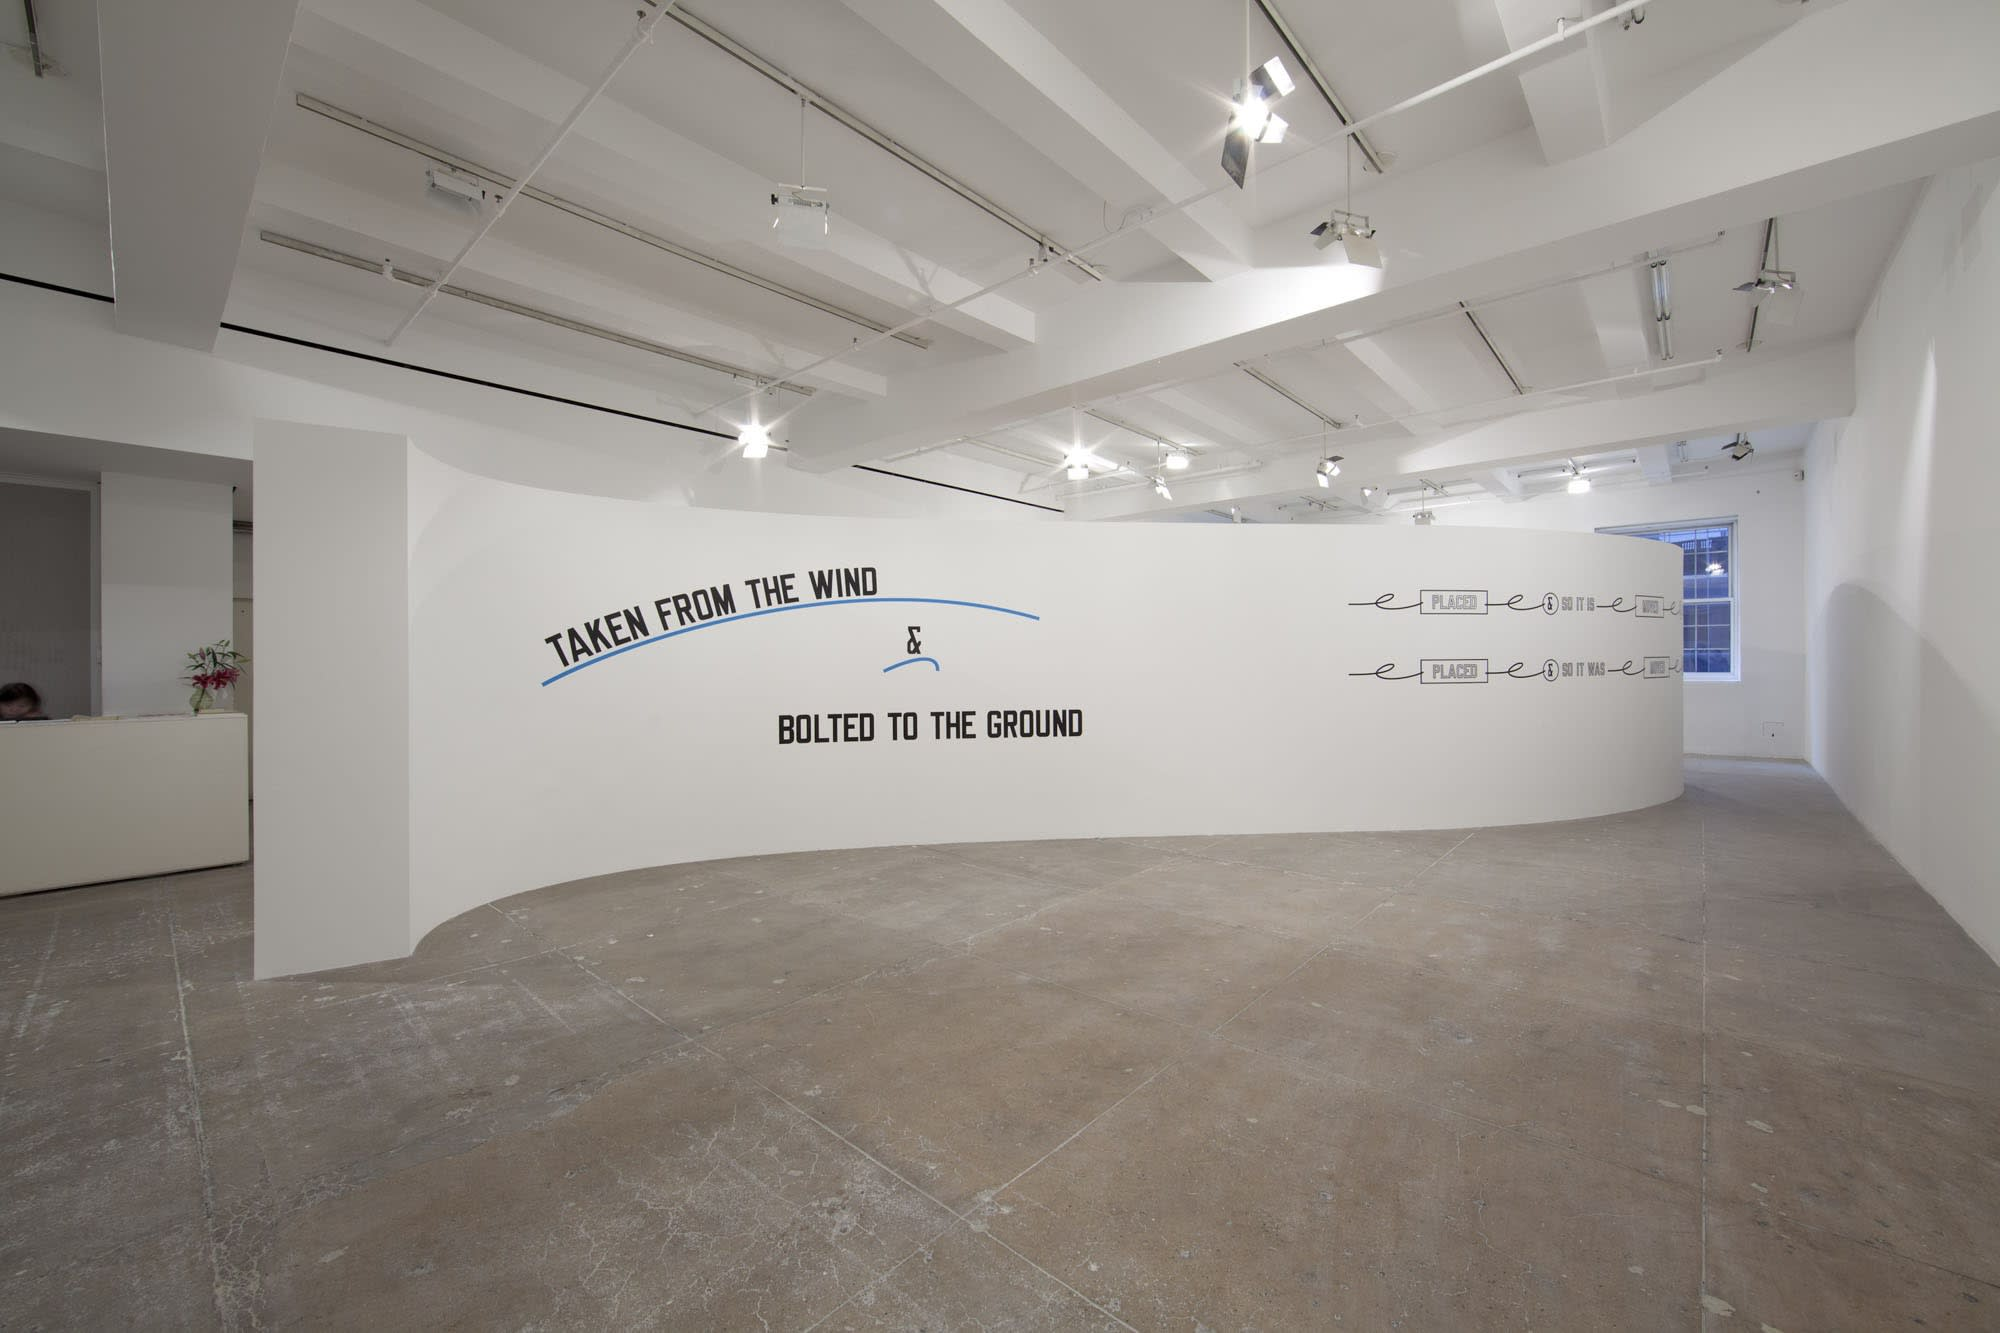 On a curved white wall, large, stylized text reads: TAKEN FROM THE WIND & BOLTED TO THE GROUND.